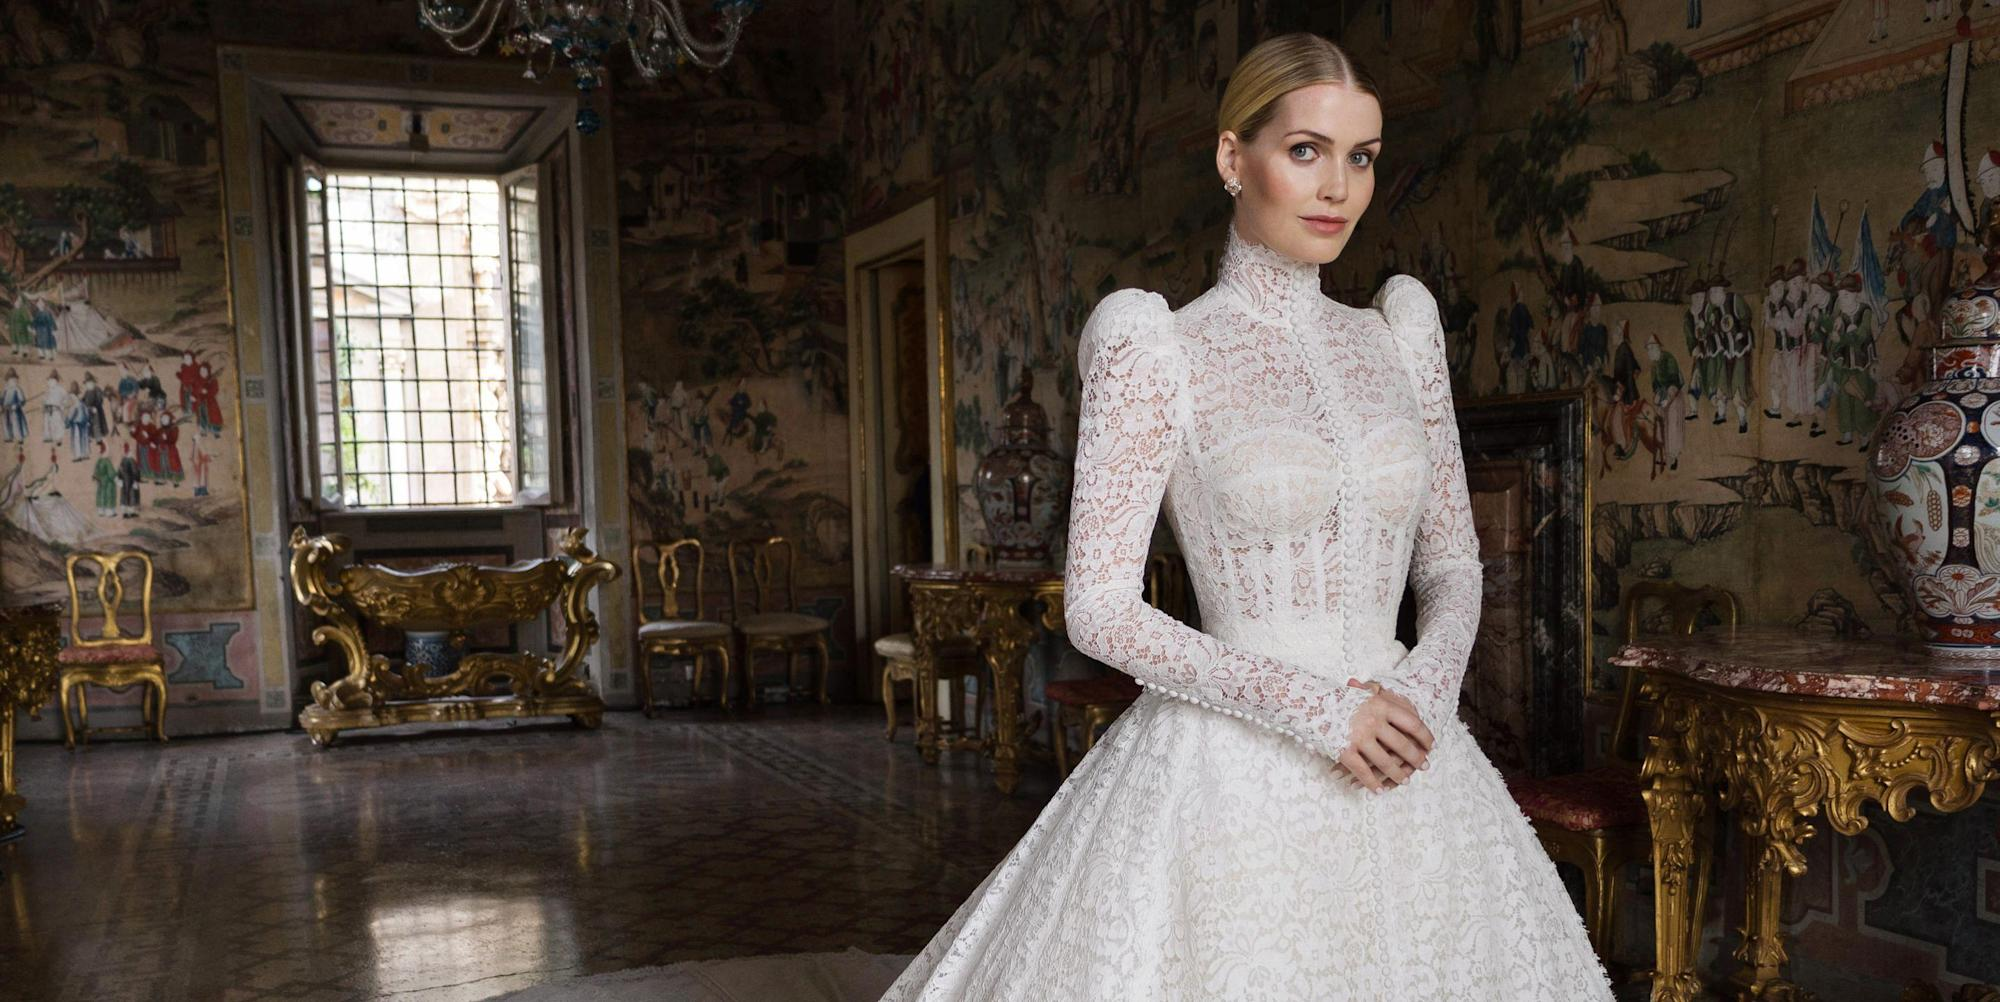 Kitty Spencer gets married in a spectacular Dolce & Gabbana wedding dress